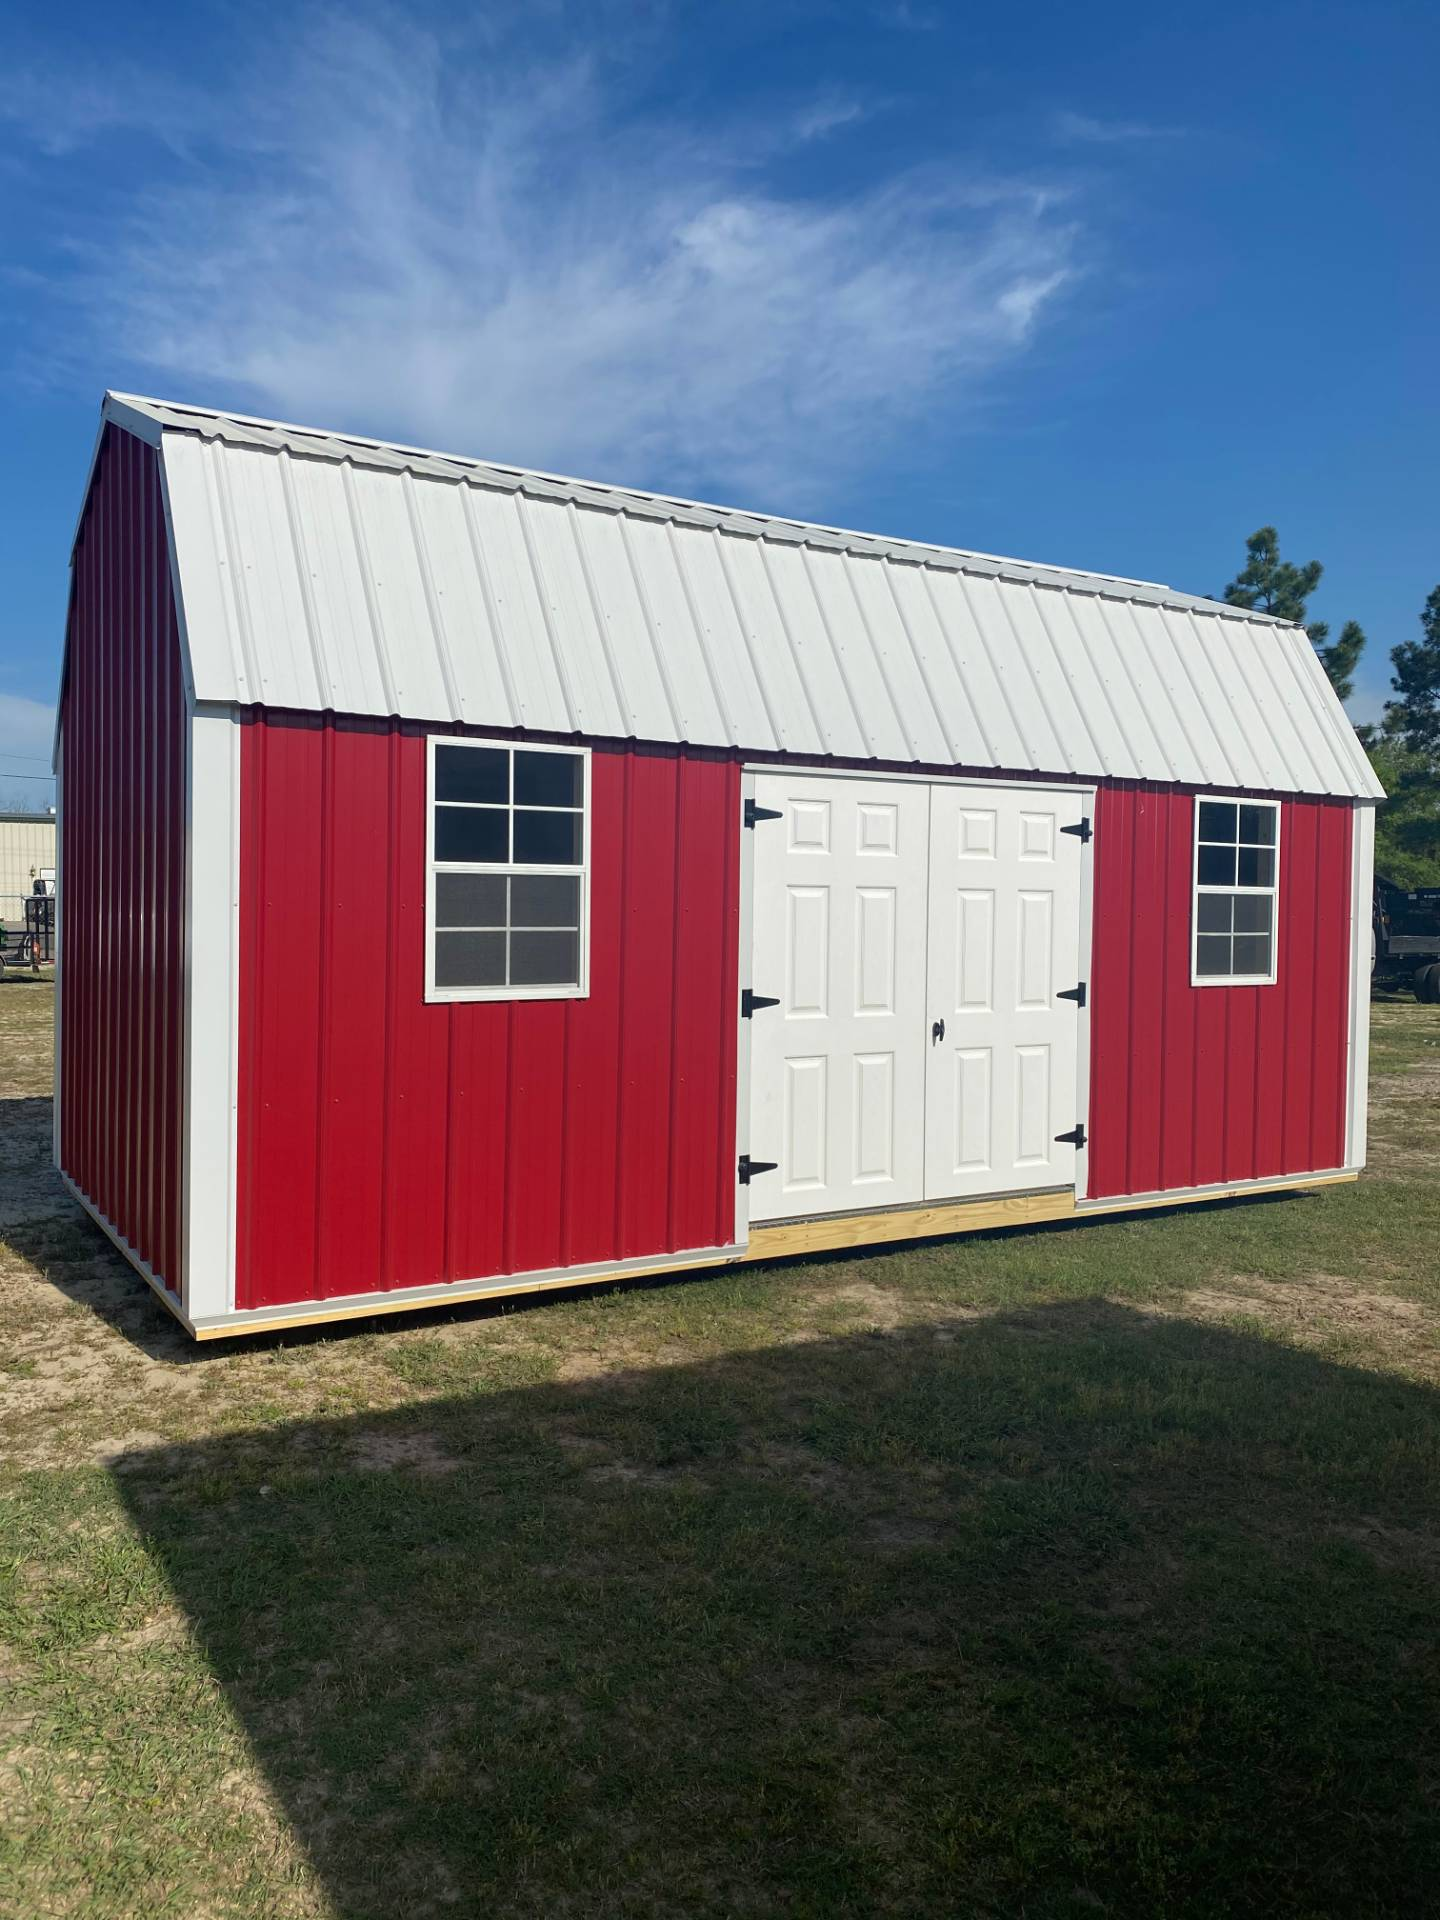 2019 PREMIER PORTABLE BUILDINGS MSLD-101410-1020-12820 in Tifton, Georgia - Photo 1